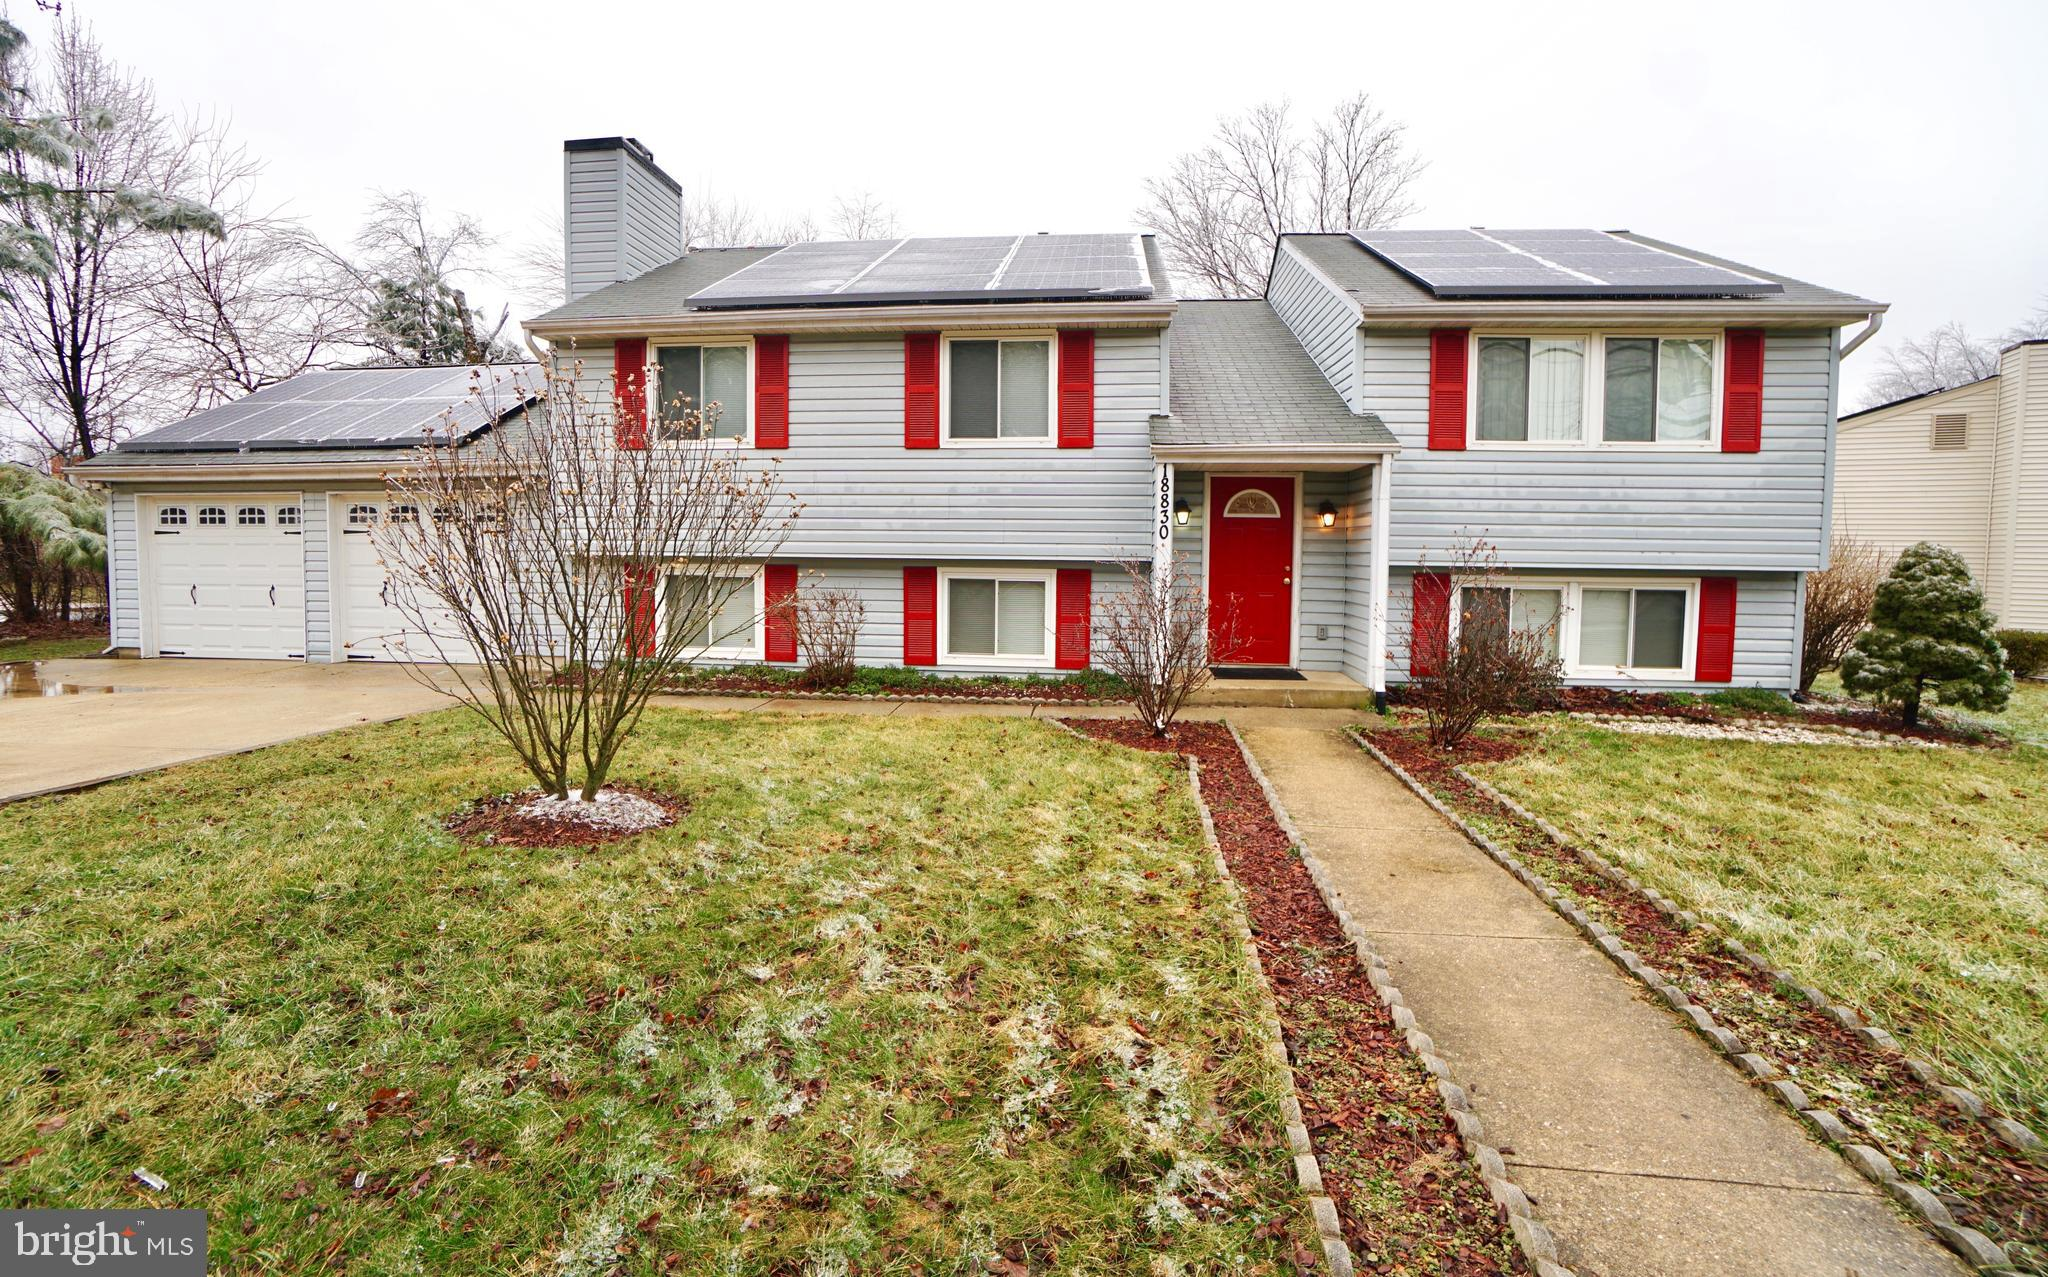 18830 STRAWBERRY KNOLL ROAD, GAITHERSBURG, MD 20879